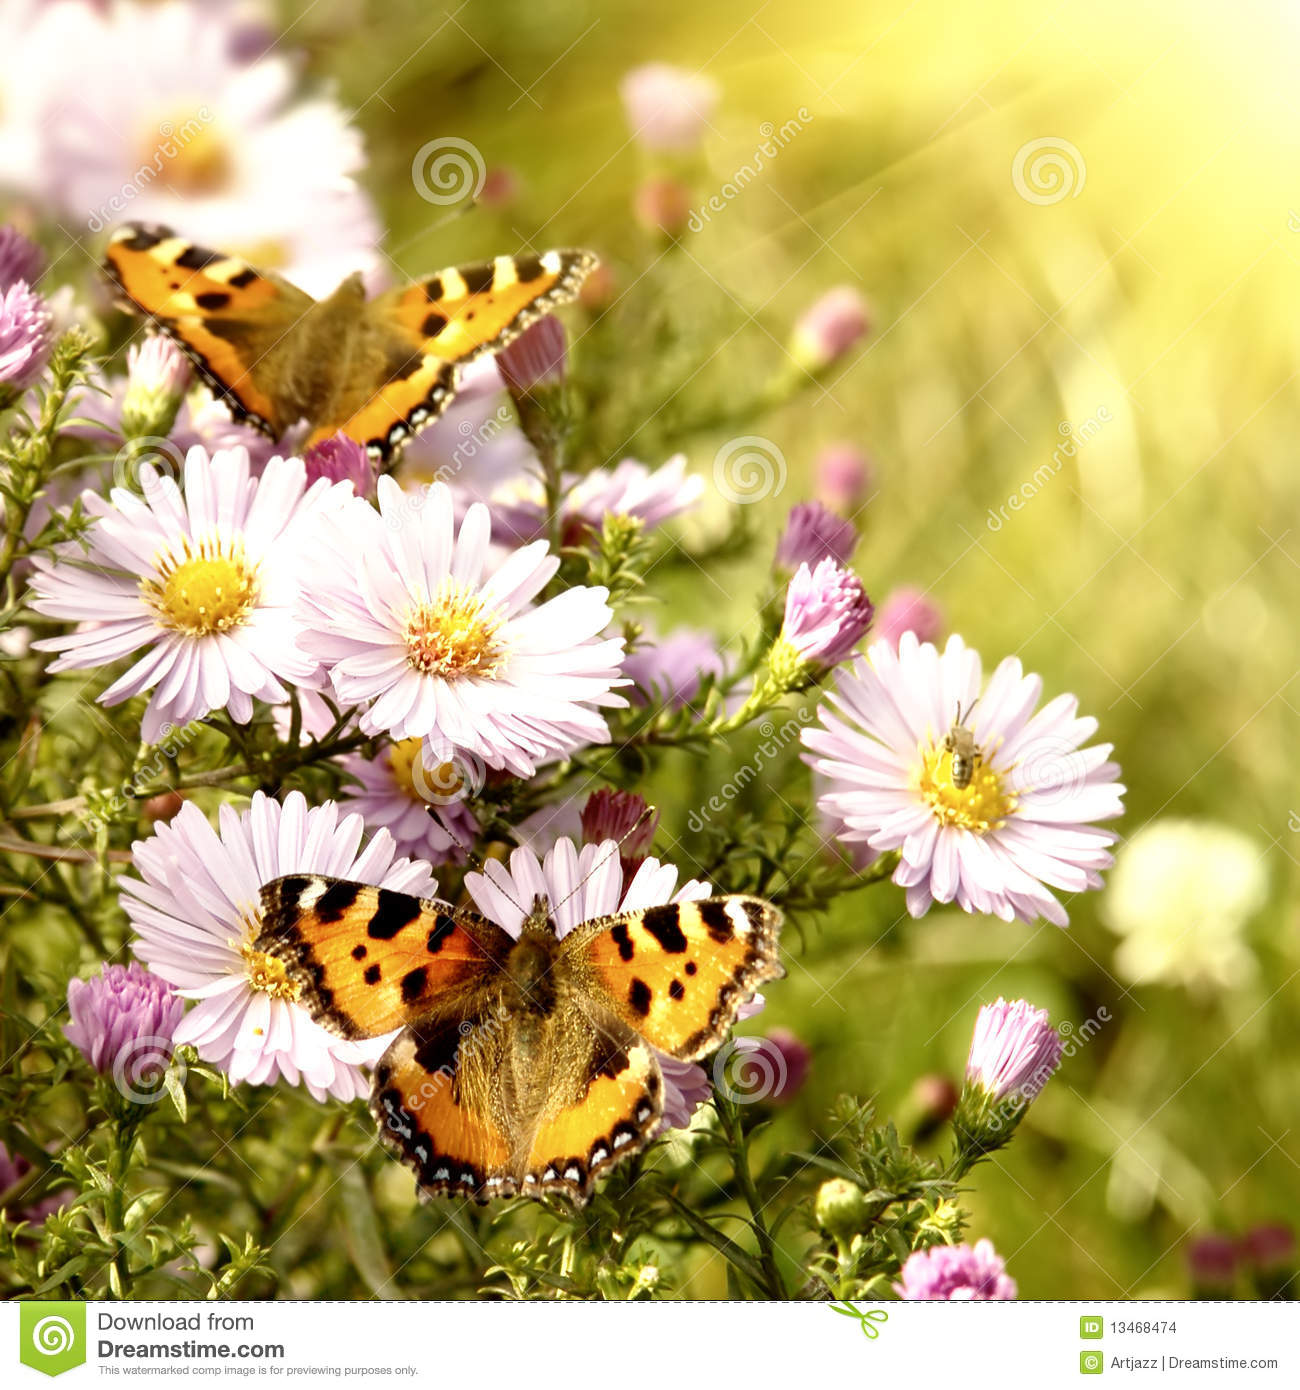 Two Butterfly On Flowers Stock Images - Image: 13468474 Yellow Butterfly Clipart